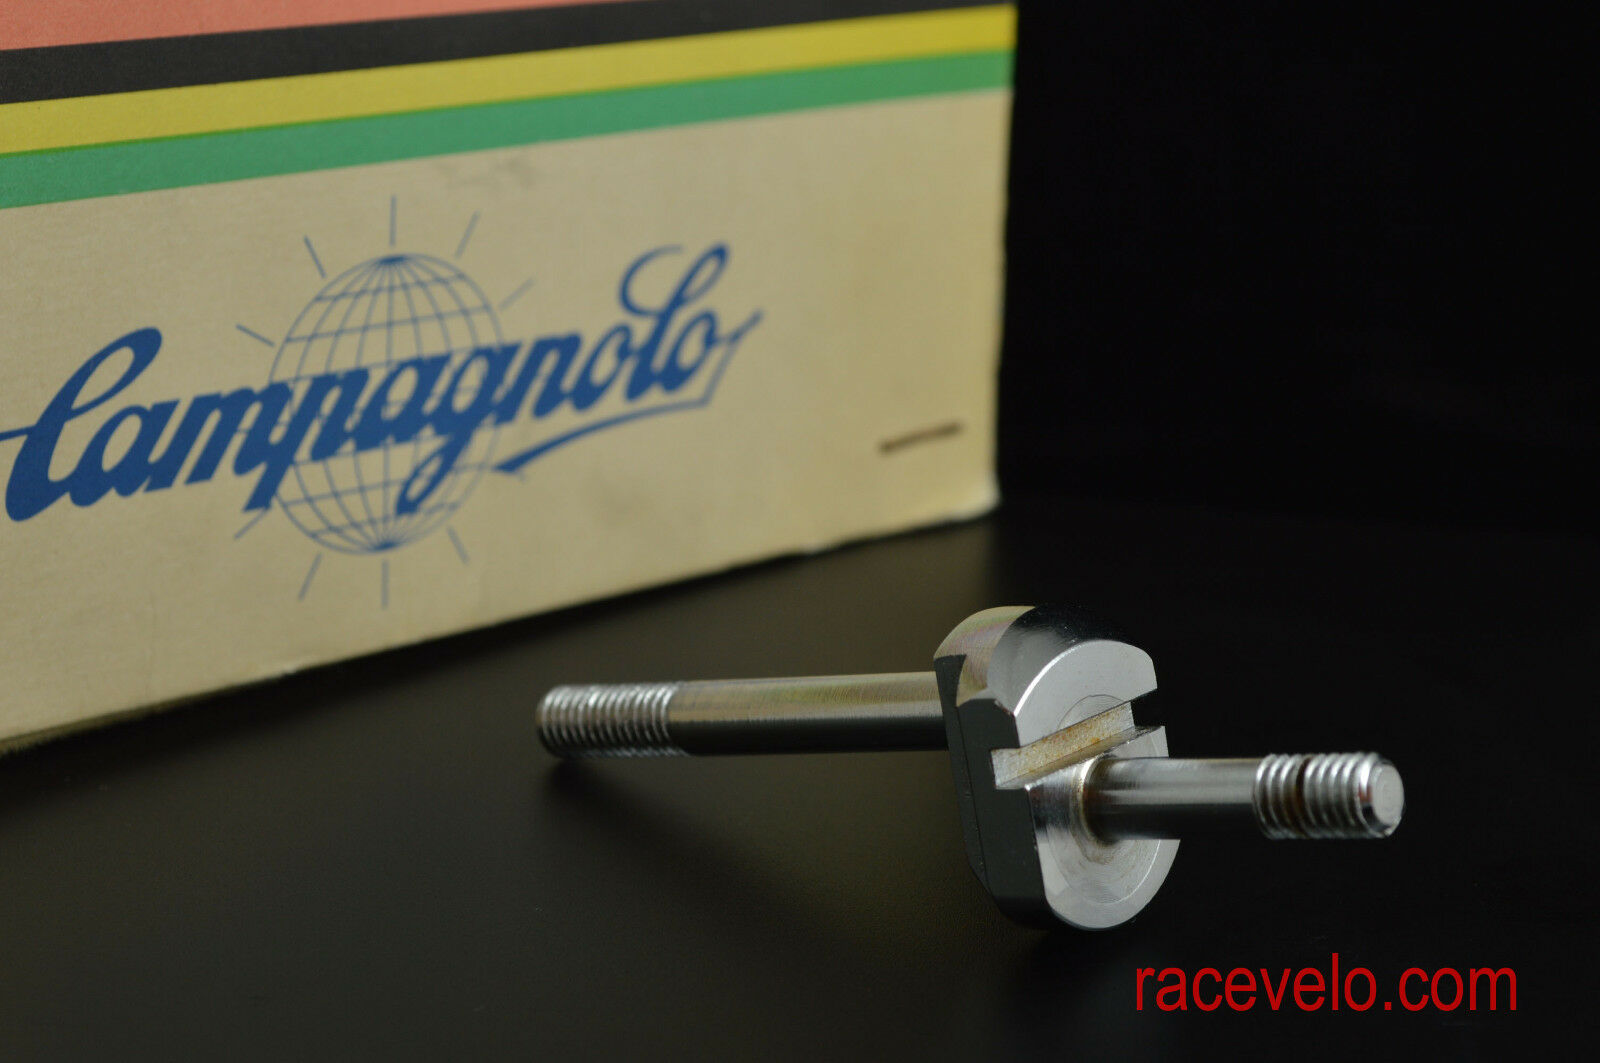 Vintage NOS  Brake drop bolt chrome for Campagnolo Dia Compe gipiemme Long NEW  free shipping worldwide